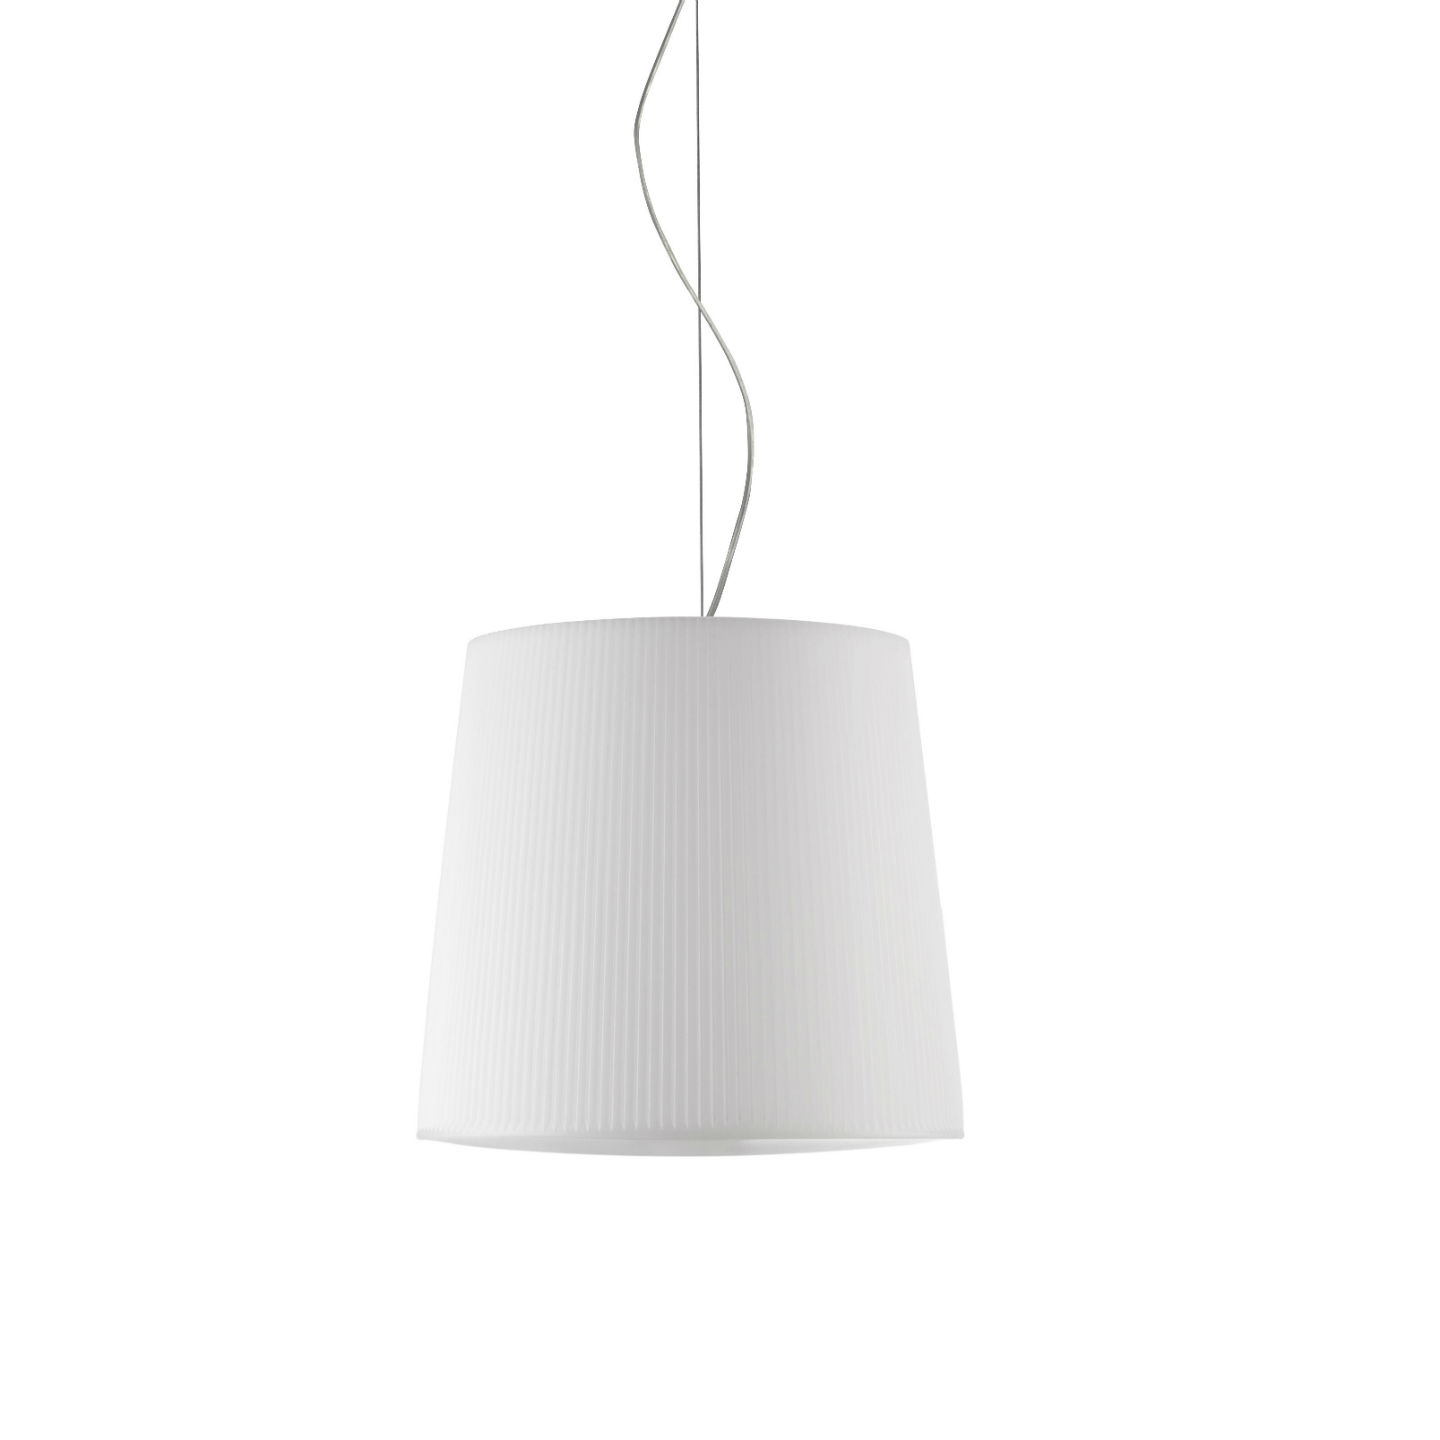 Inout T Pendant Lamp Small white